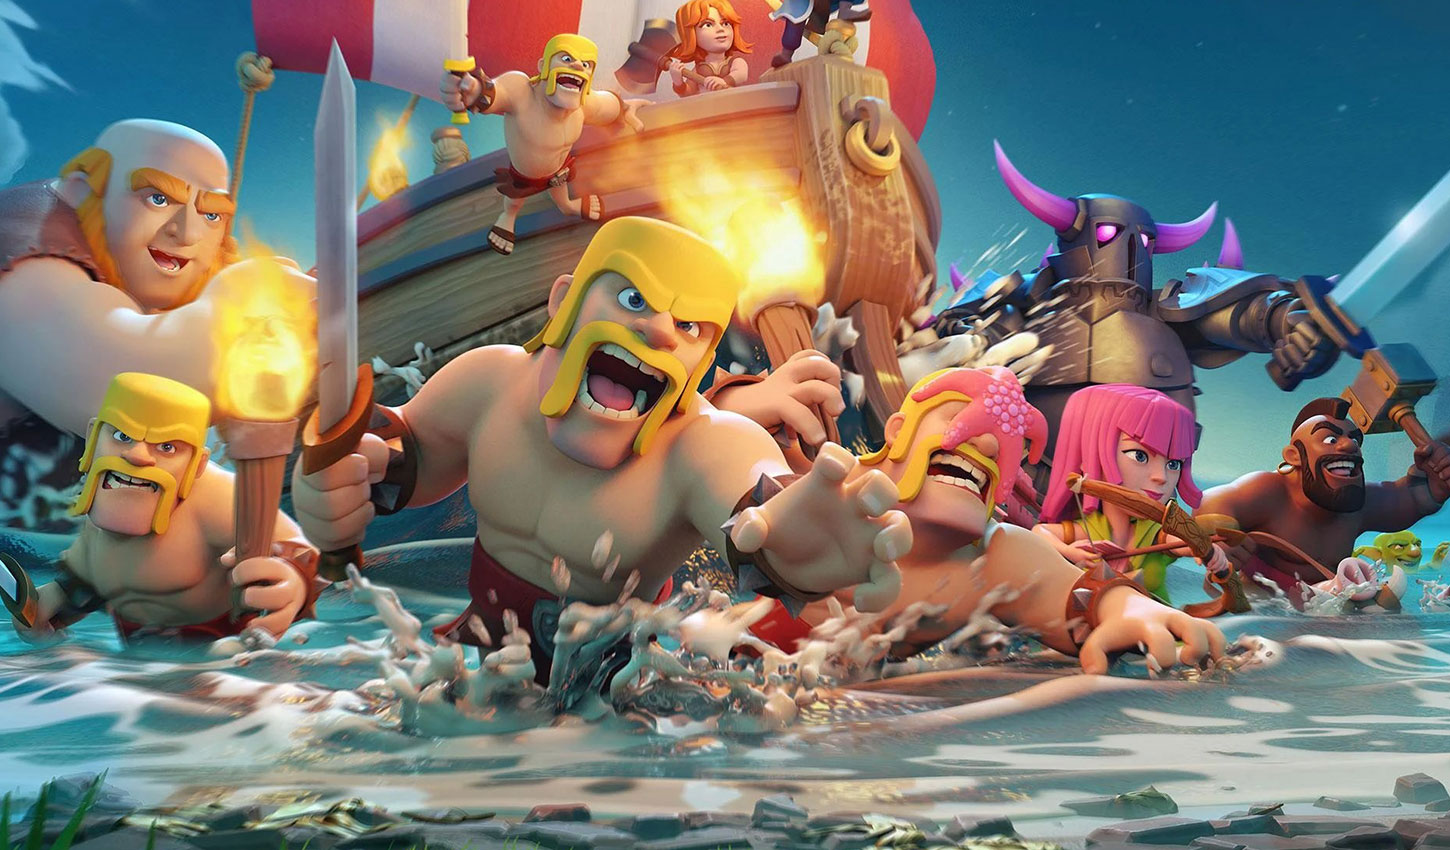 Clash of Clans receives a huge update that includes a new Hero, Units and more